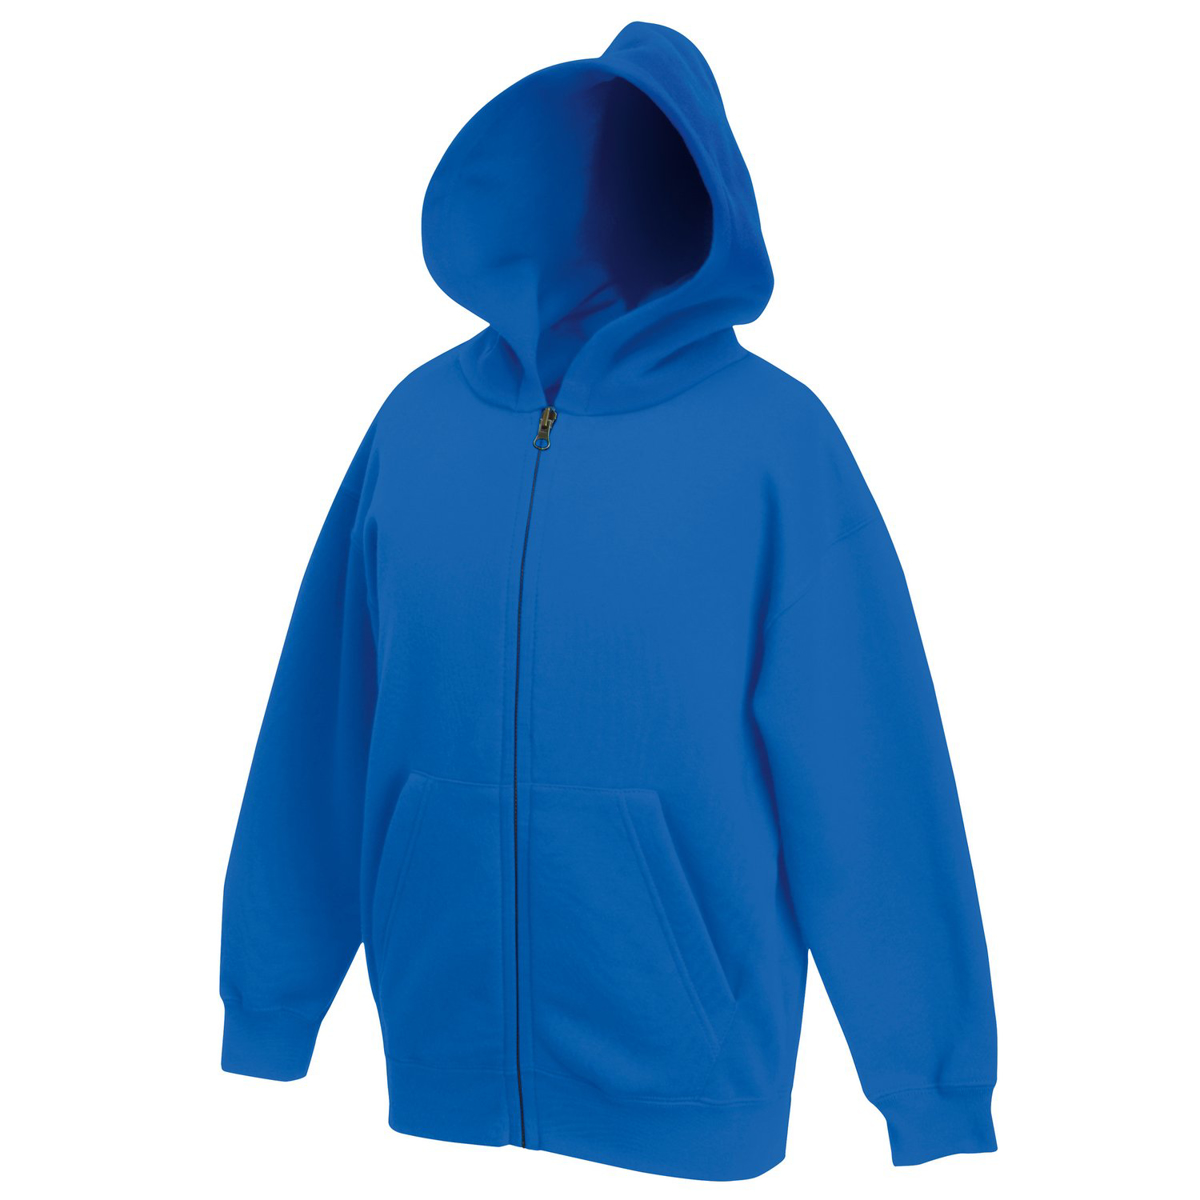 Fruit of the Loom Childrens Hoodie - Royal Blue